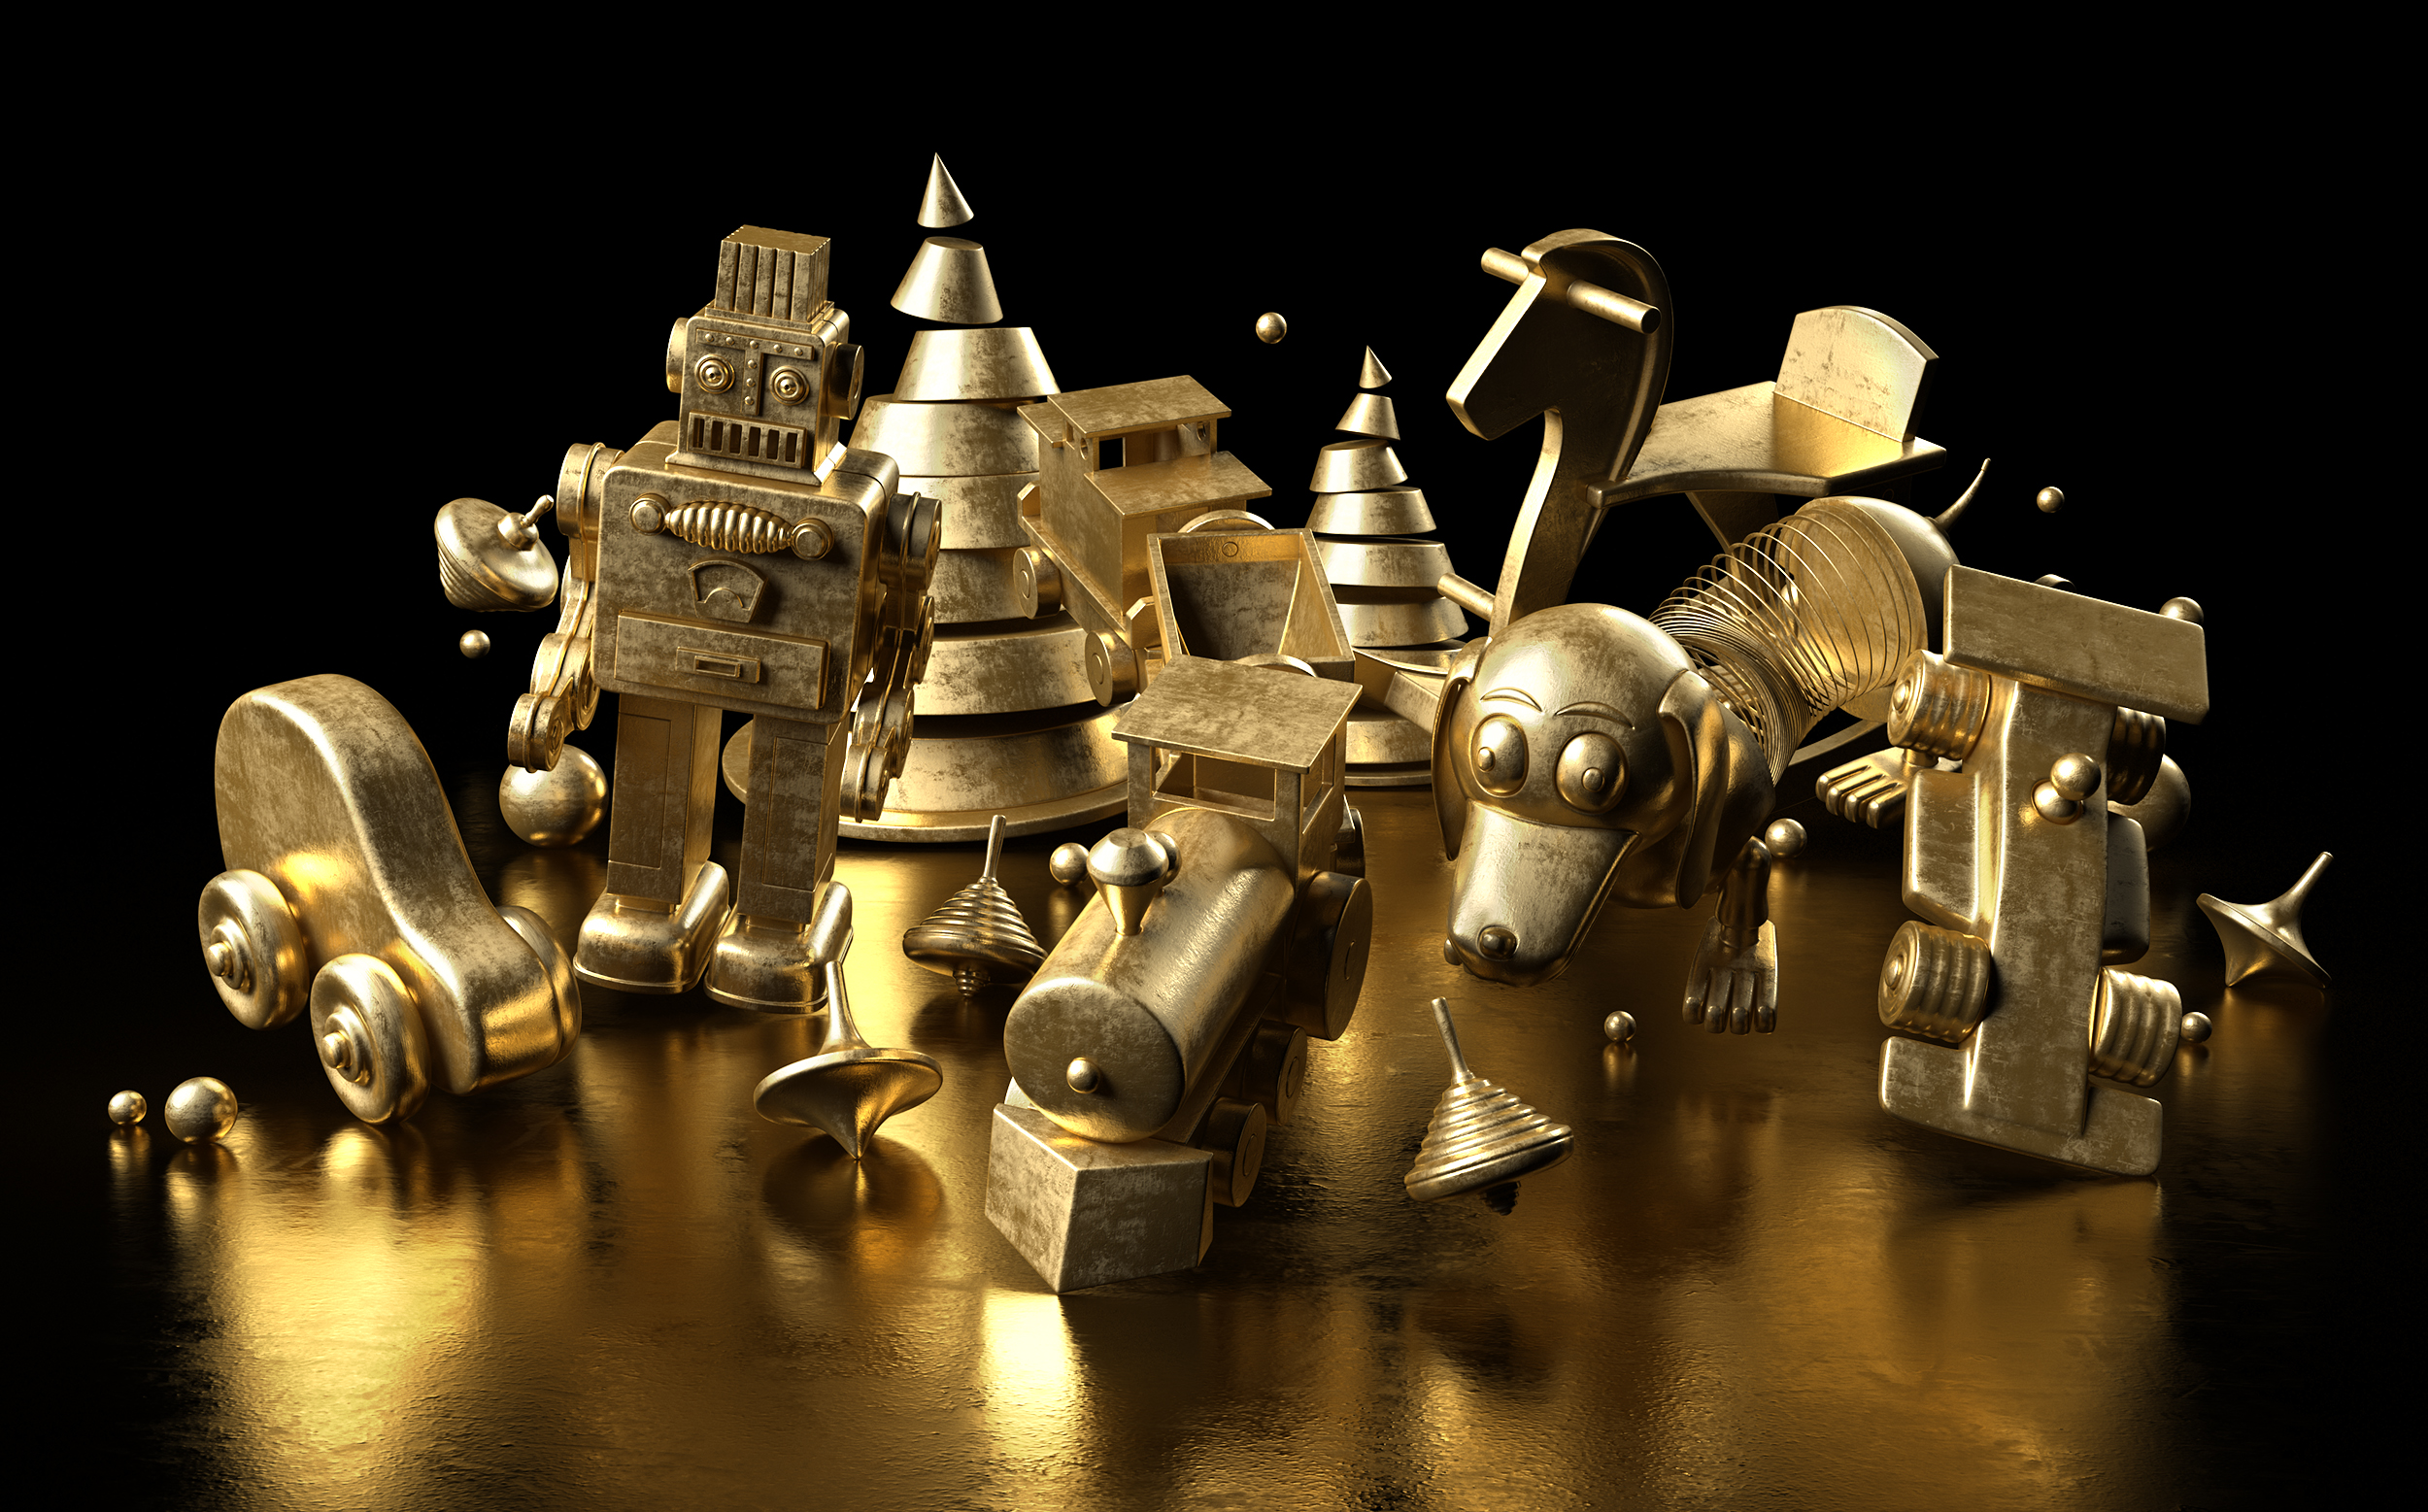 GOLDEN TOYS STILLLIFE 2